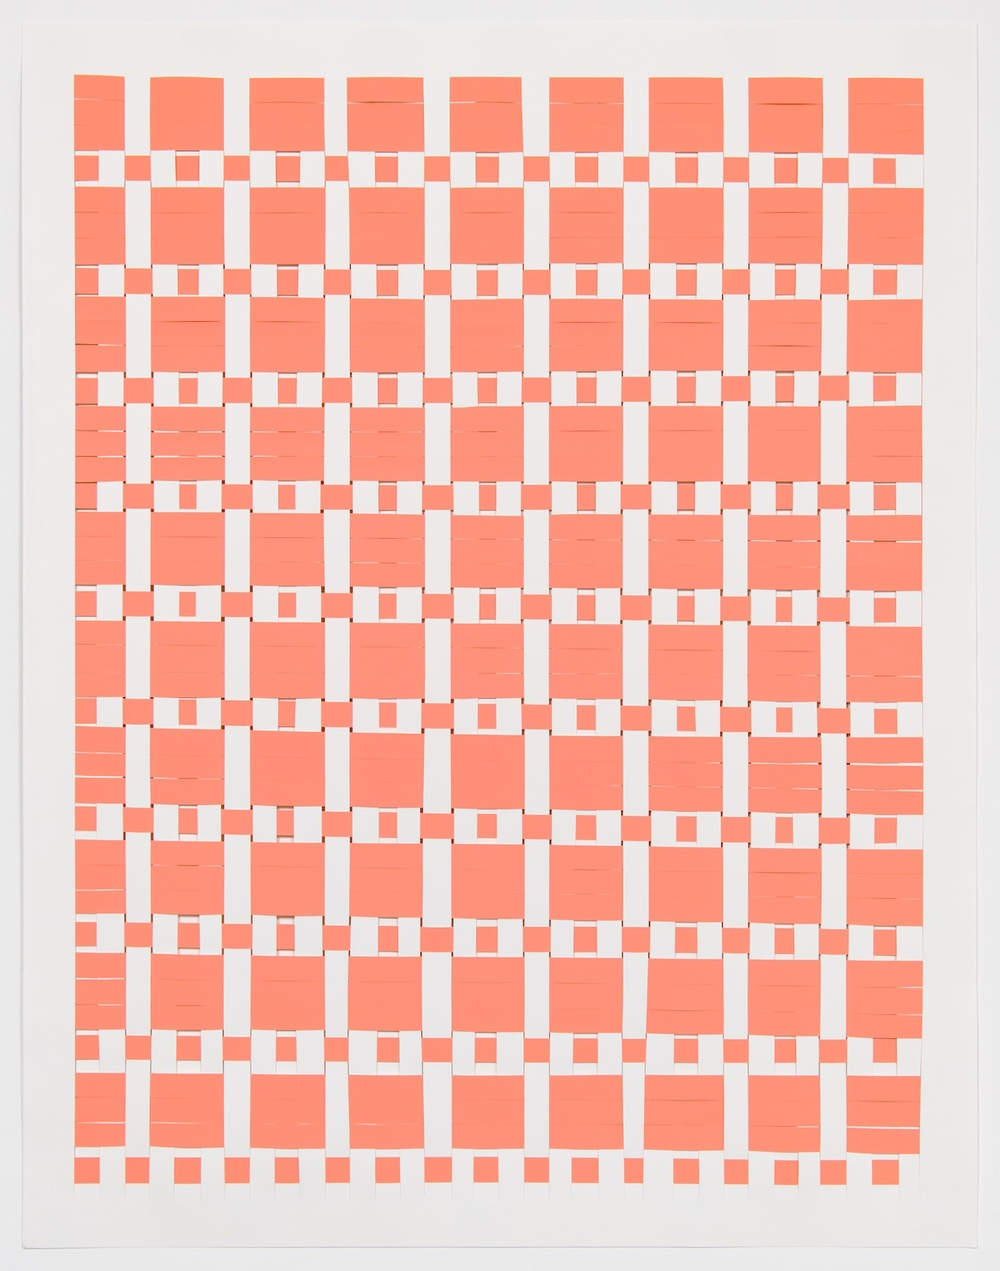 Michelle Graber  Untitled  2013 Paper and Color-aid 49h x 38w in MGrab327